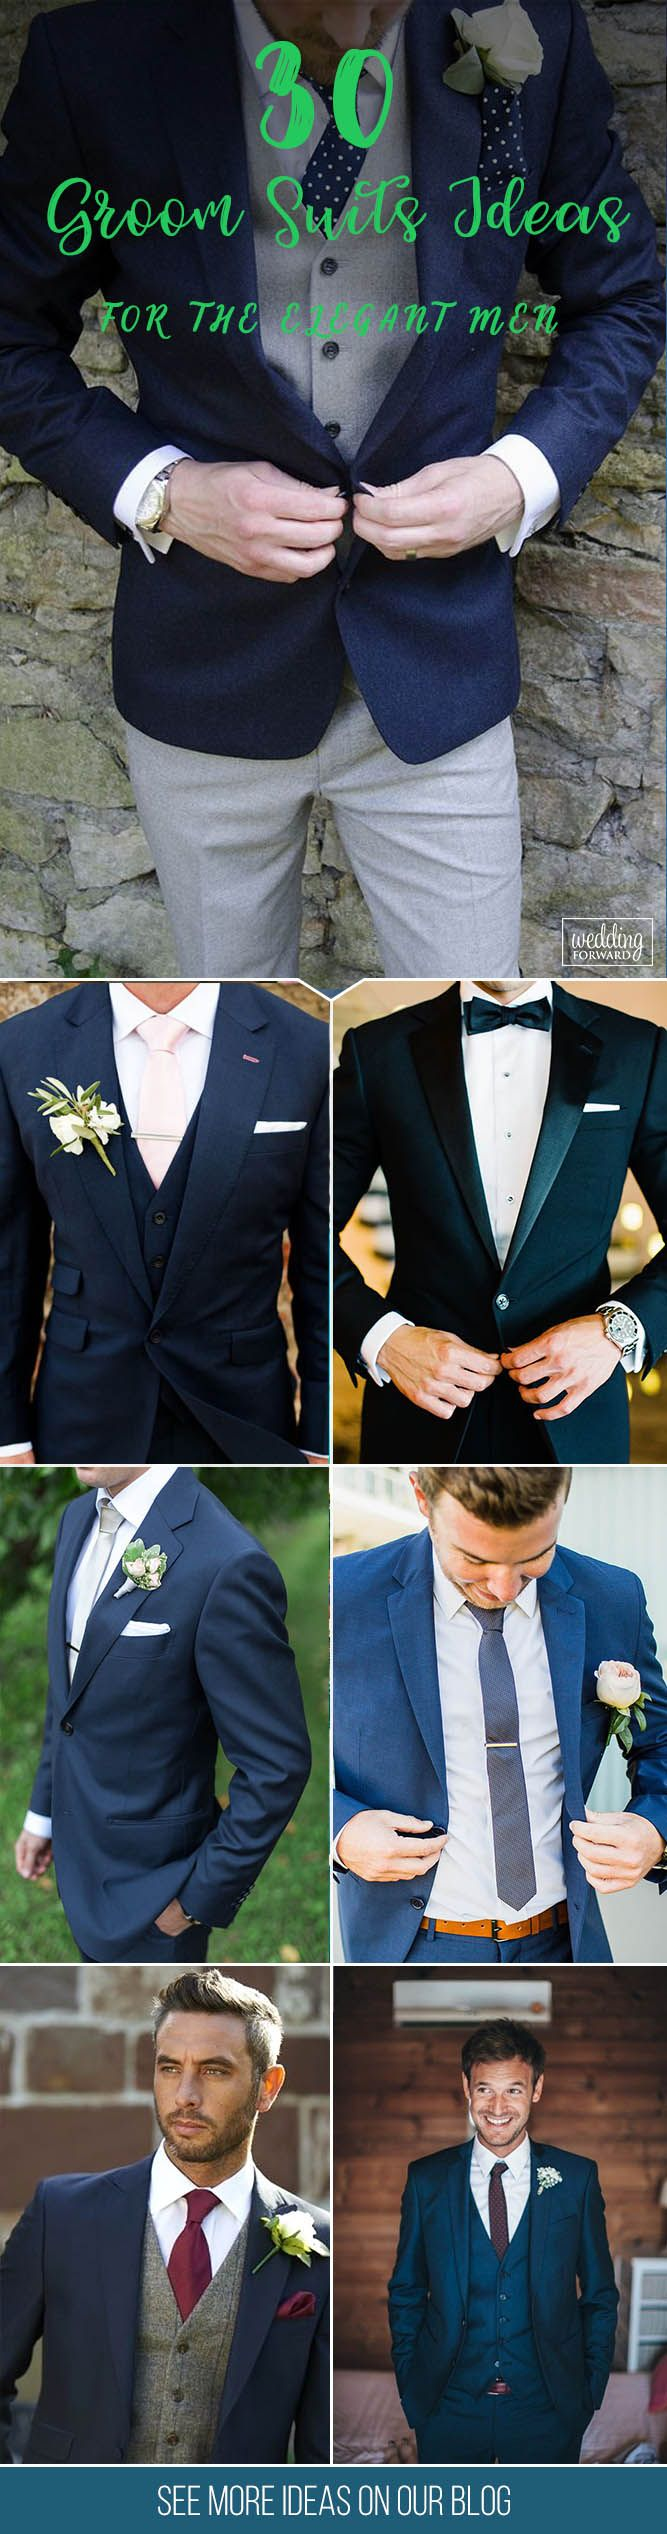 30 The Most Popular Groom Suits ❤ The choice of groom suits becomes one of the most important events. The perfect suit well fits a groom and suits him, reflects his personality. See more:    http://www.weddingforward.com/groom-suits/ #groom #groomsman